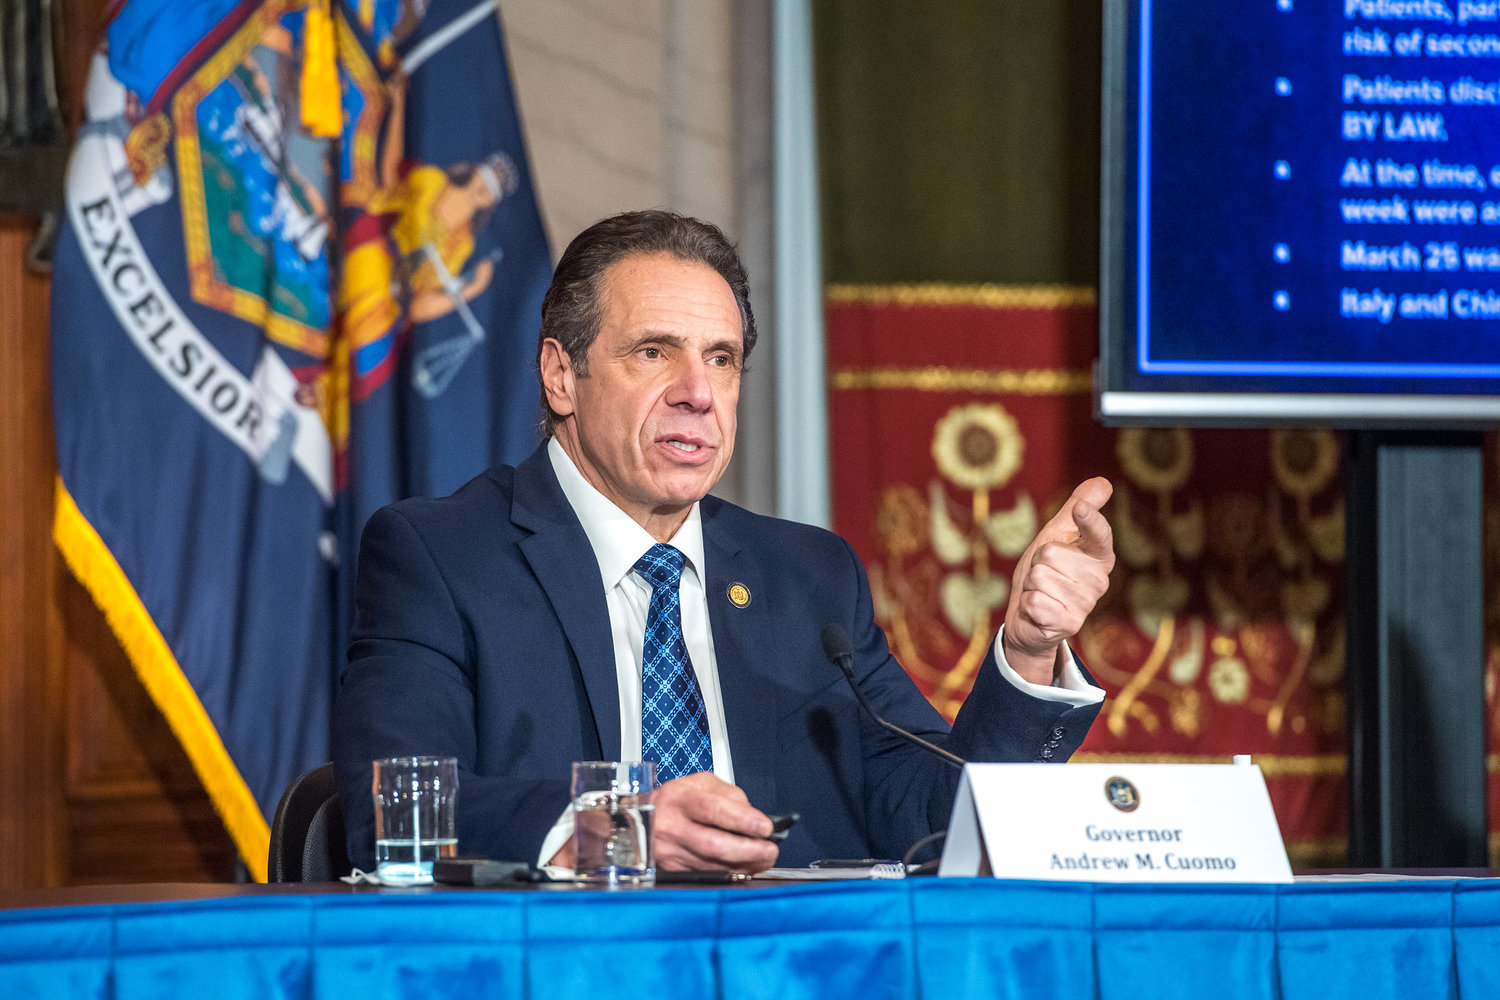 Gov. Andrew Cuomo is restoring some of New York City's overnight subway service, closing the system down between 2 and 4 a.m., beginning Feb. 22.